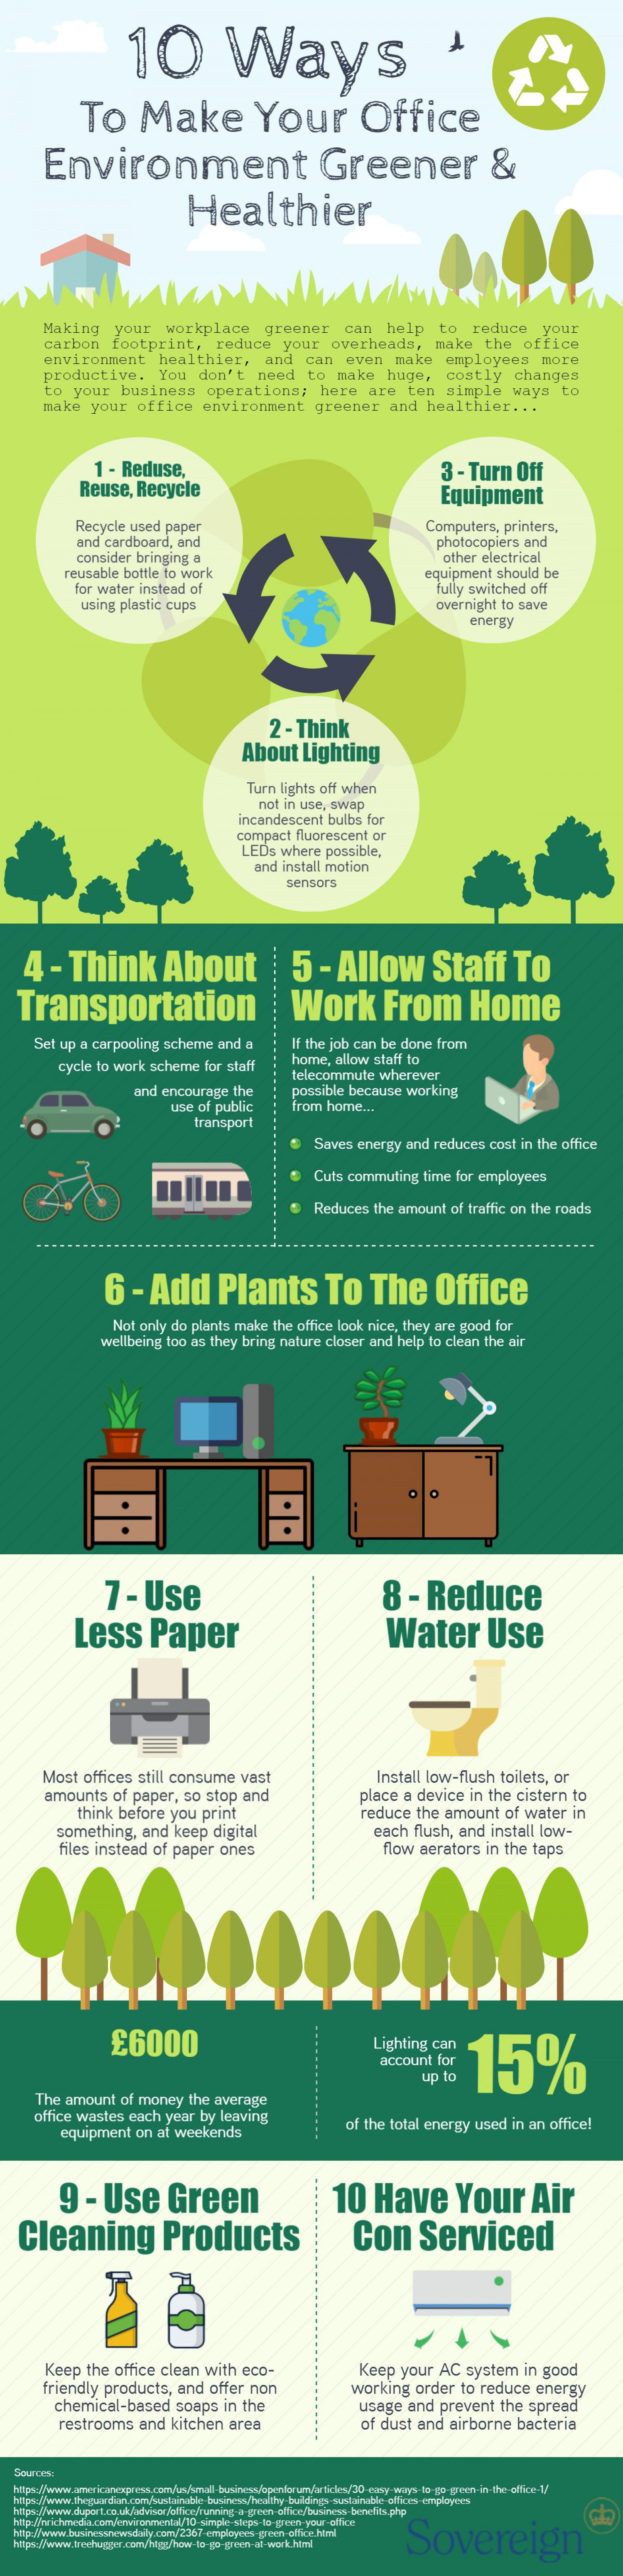 10 Ways To Make Your Office Environment Greener & Healthier Infographic